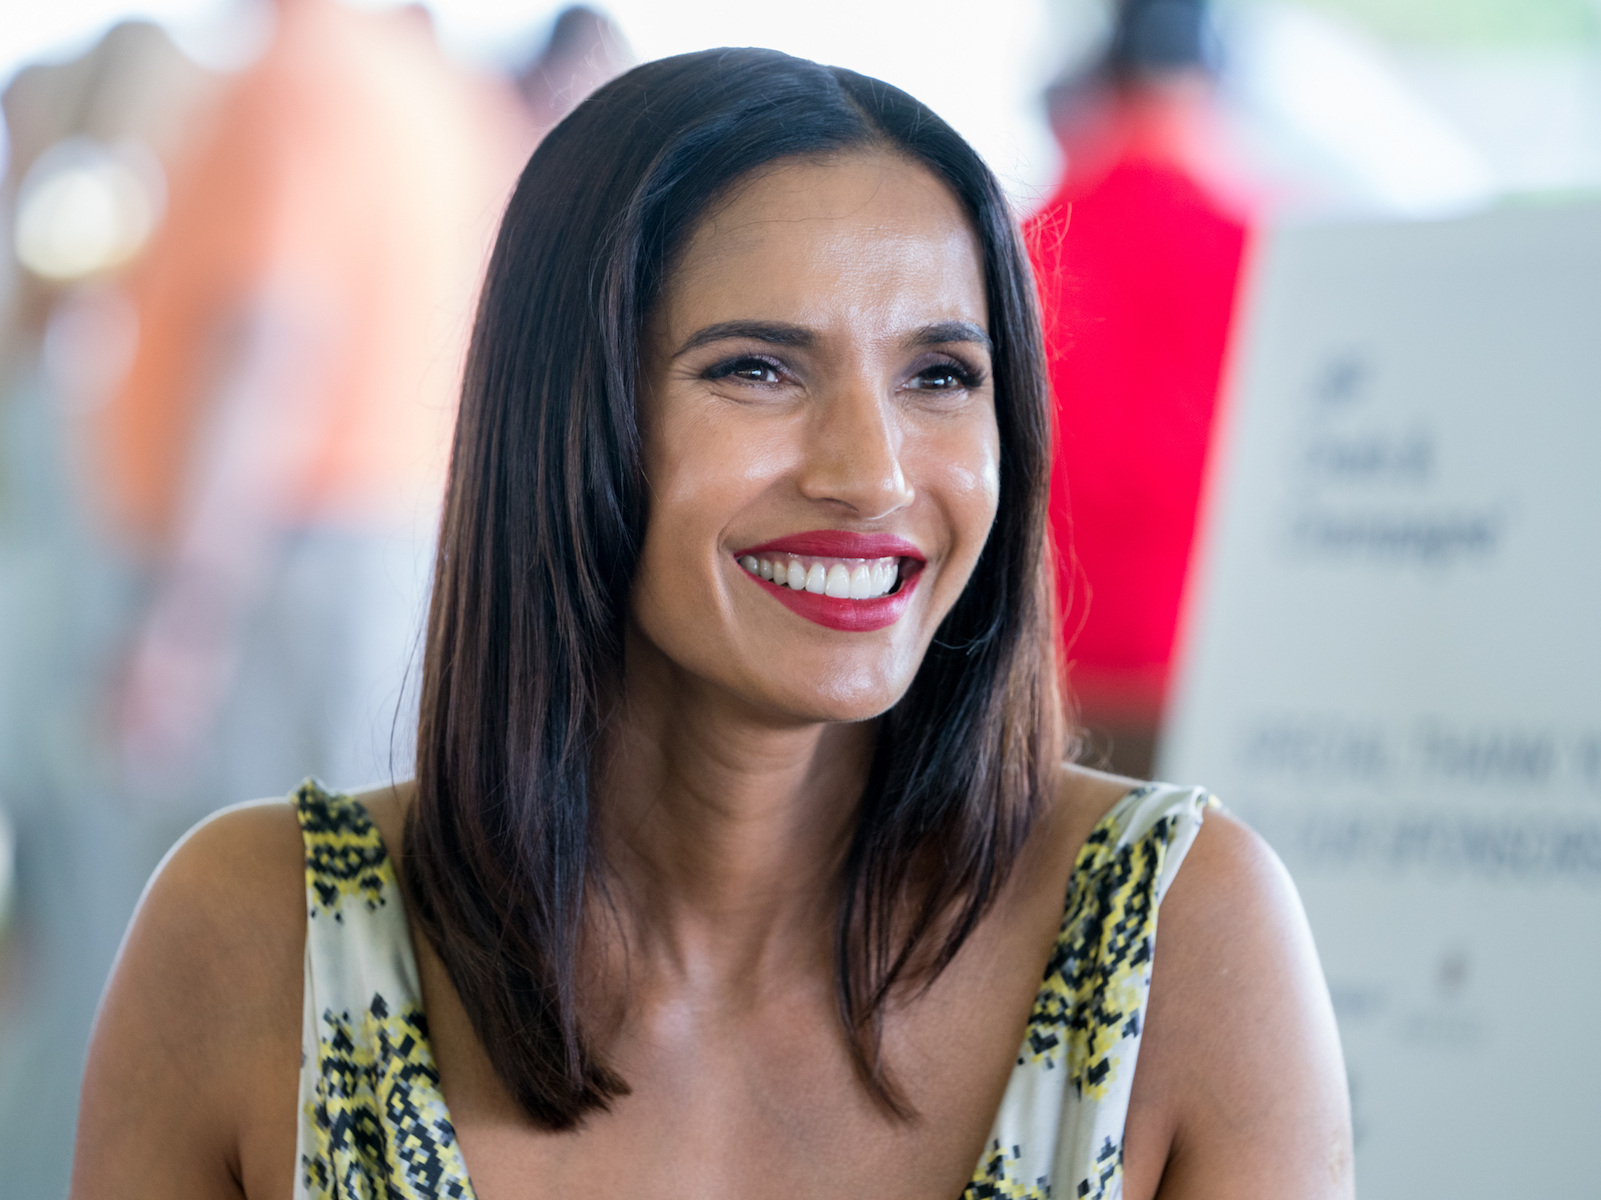 Bake Padma Lakshmi a Birthday Cake and She Might Donate $5,000 to Your Favorite Charity